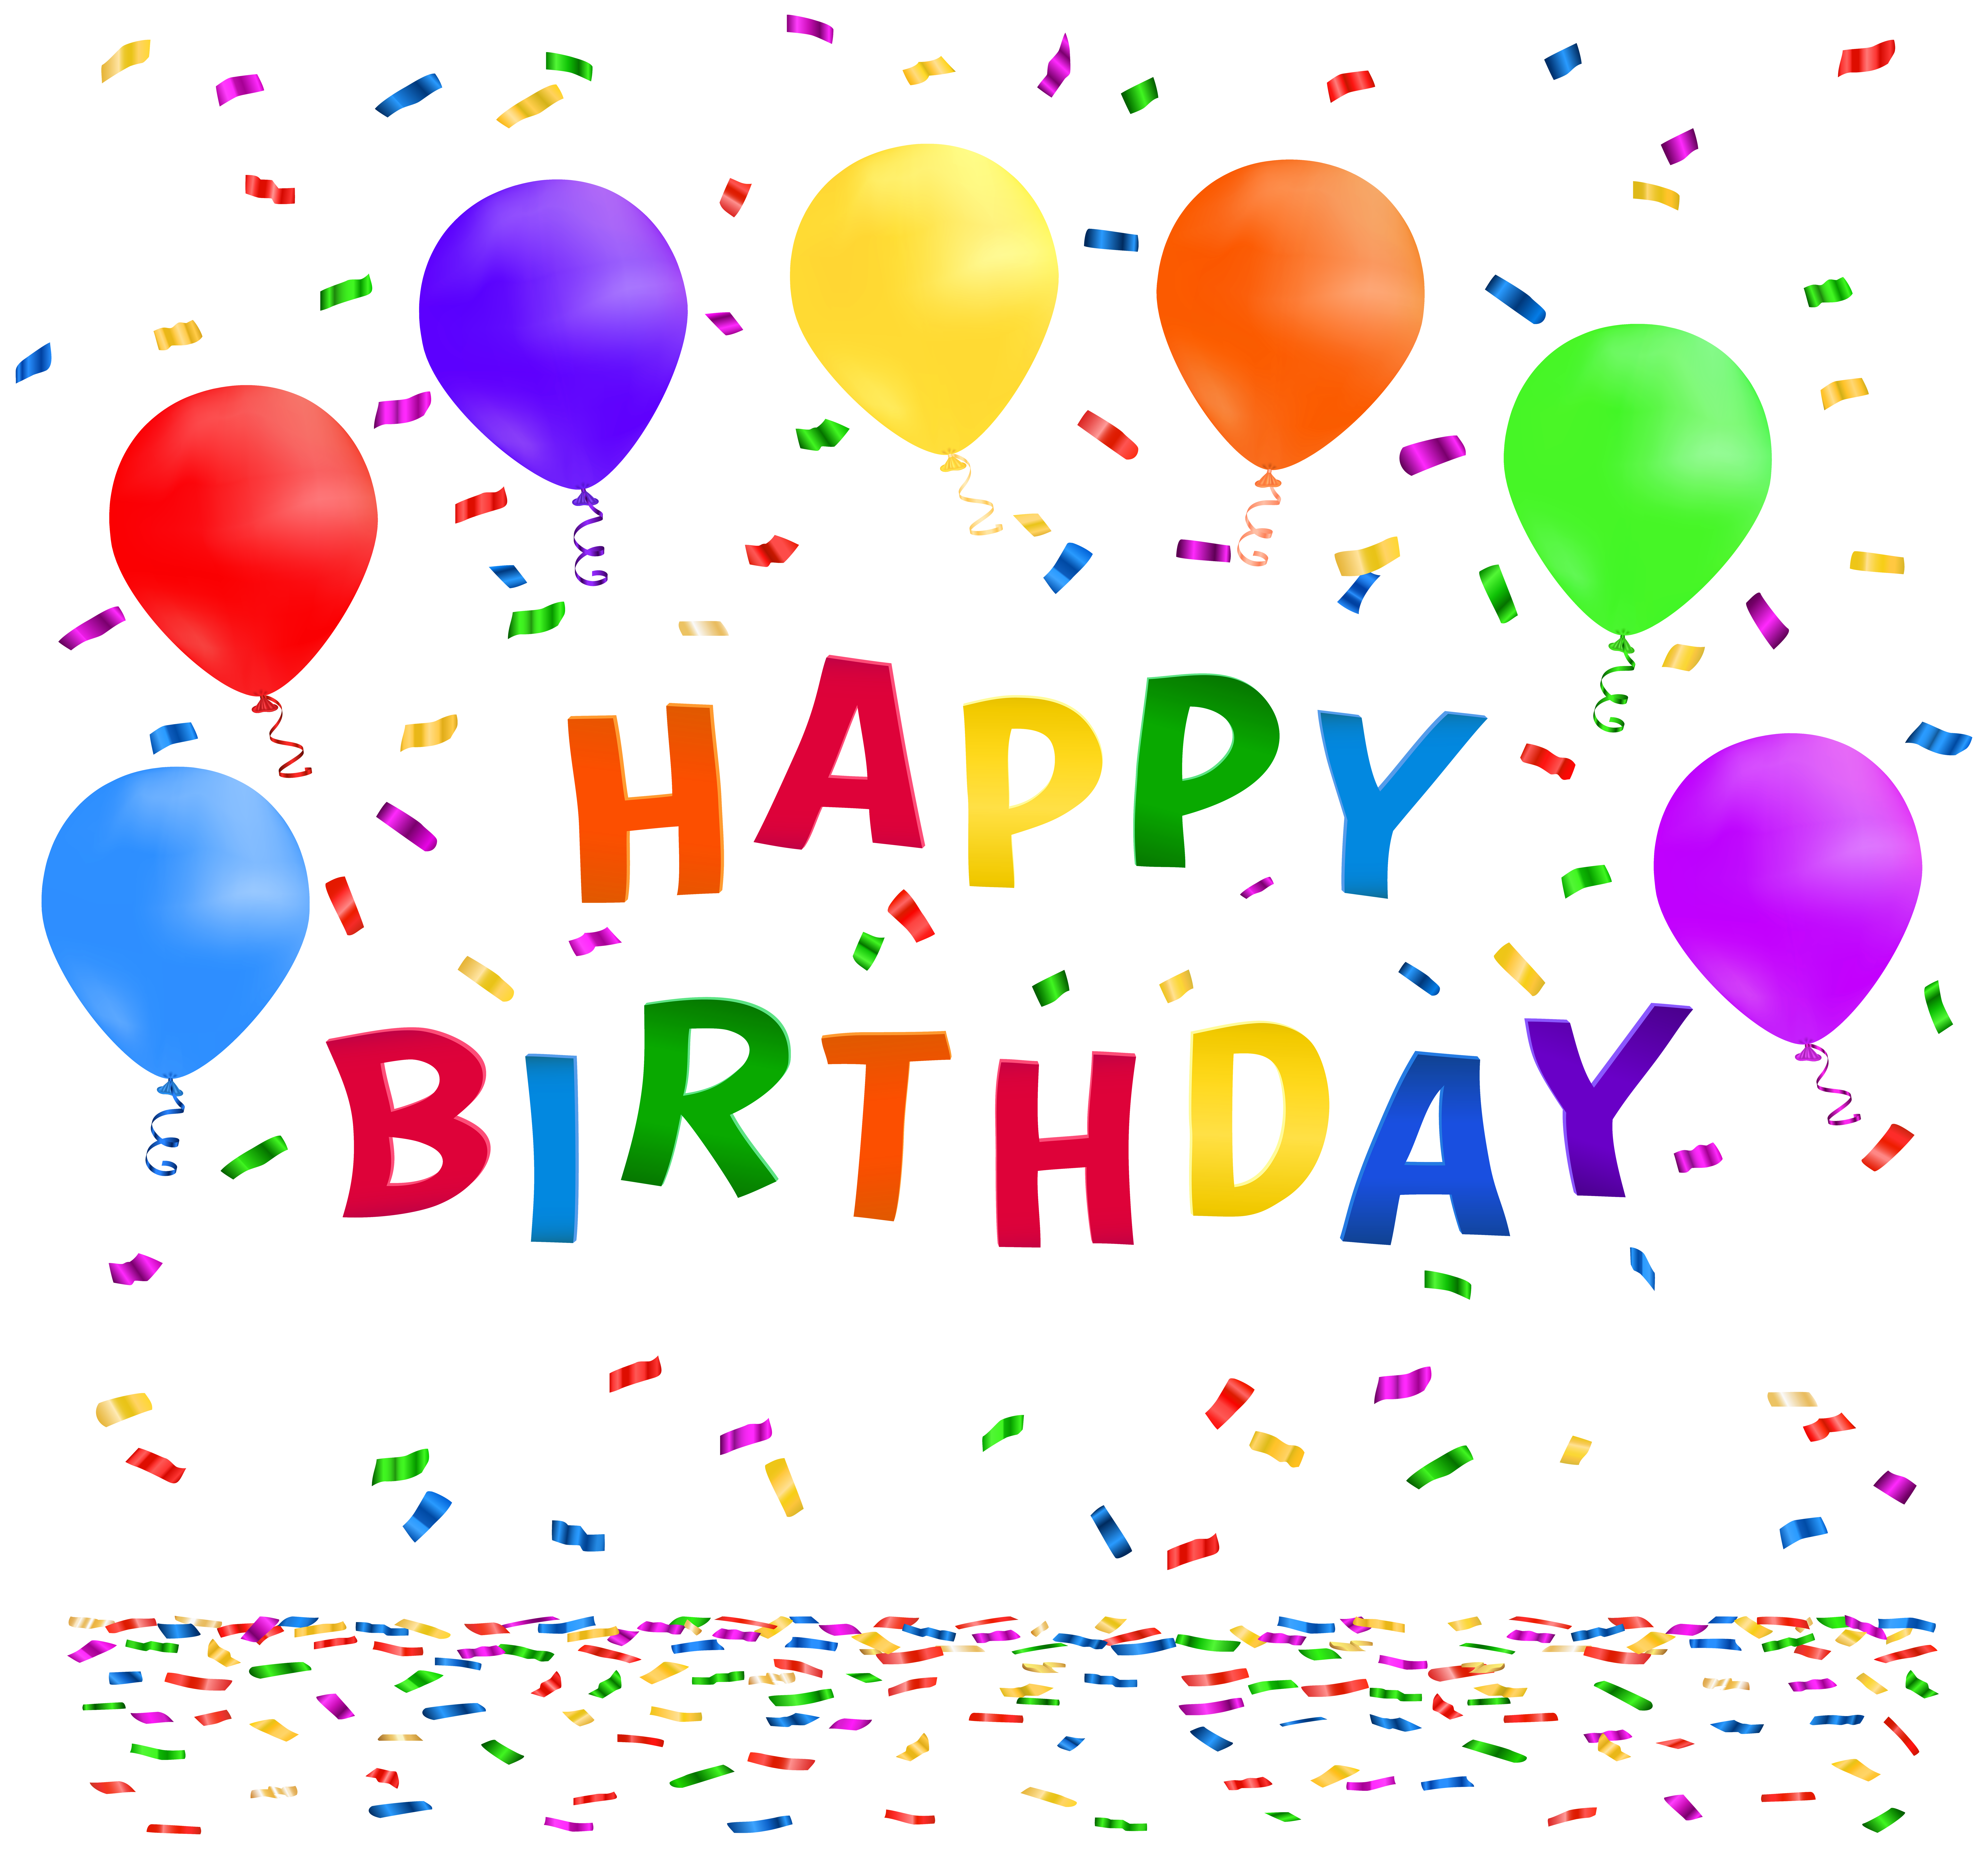 Happy Birthday with Confetti PNG Clip Art Image.